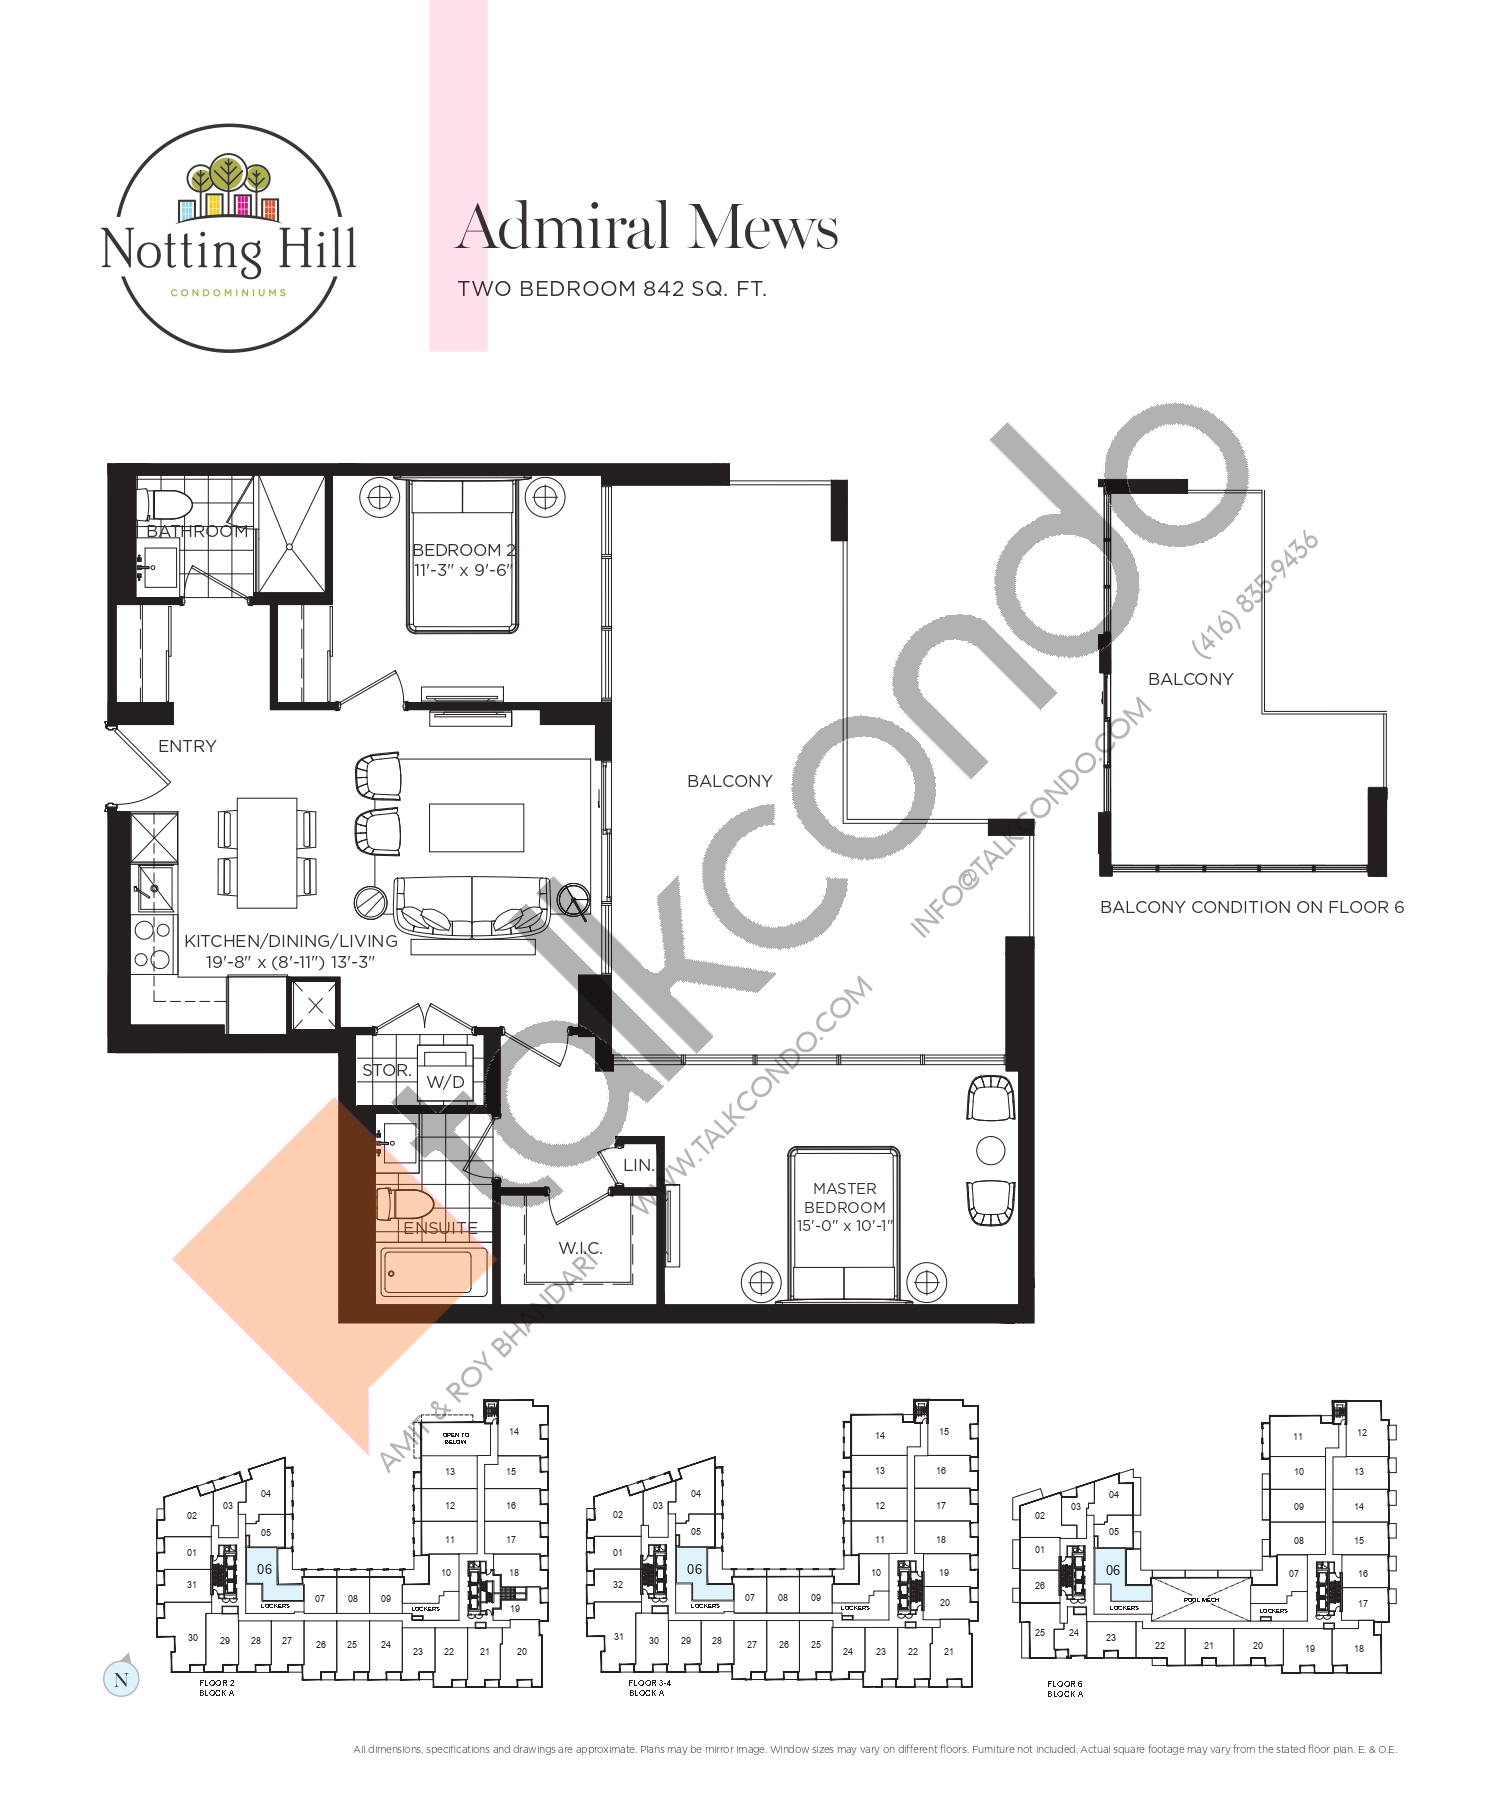 Admiral Mews Floor Plan at Notting Hill Phase 2 Condos - 842 sq.ft